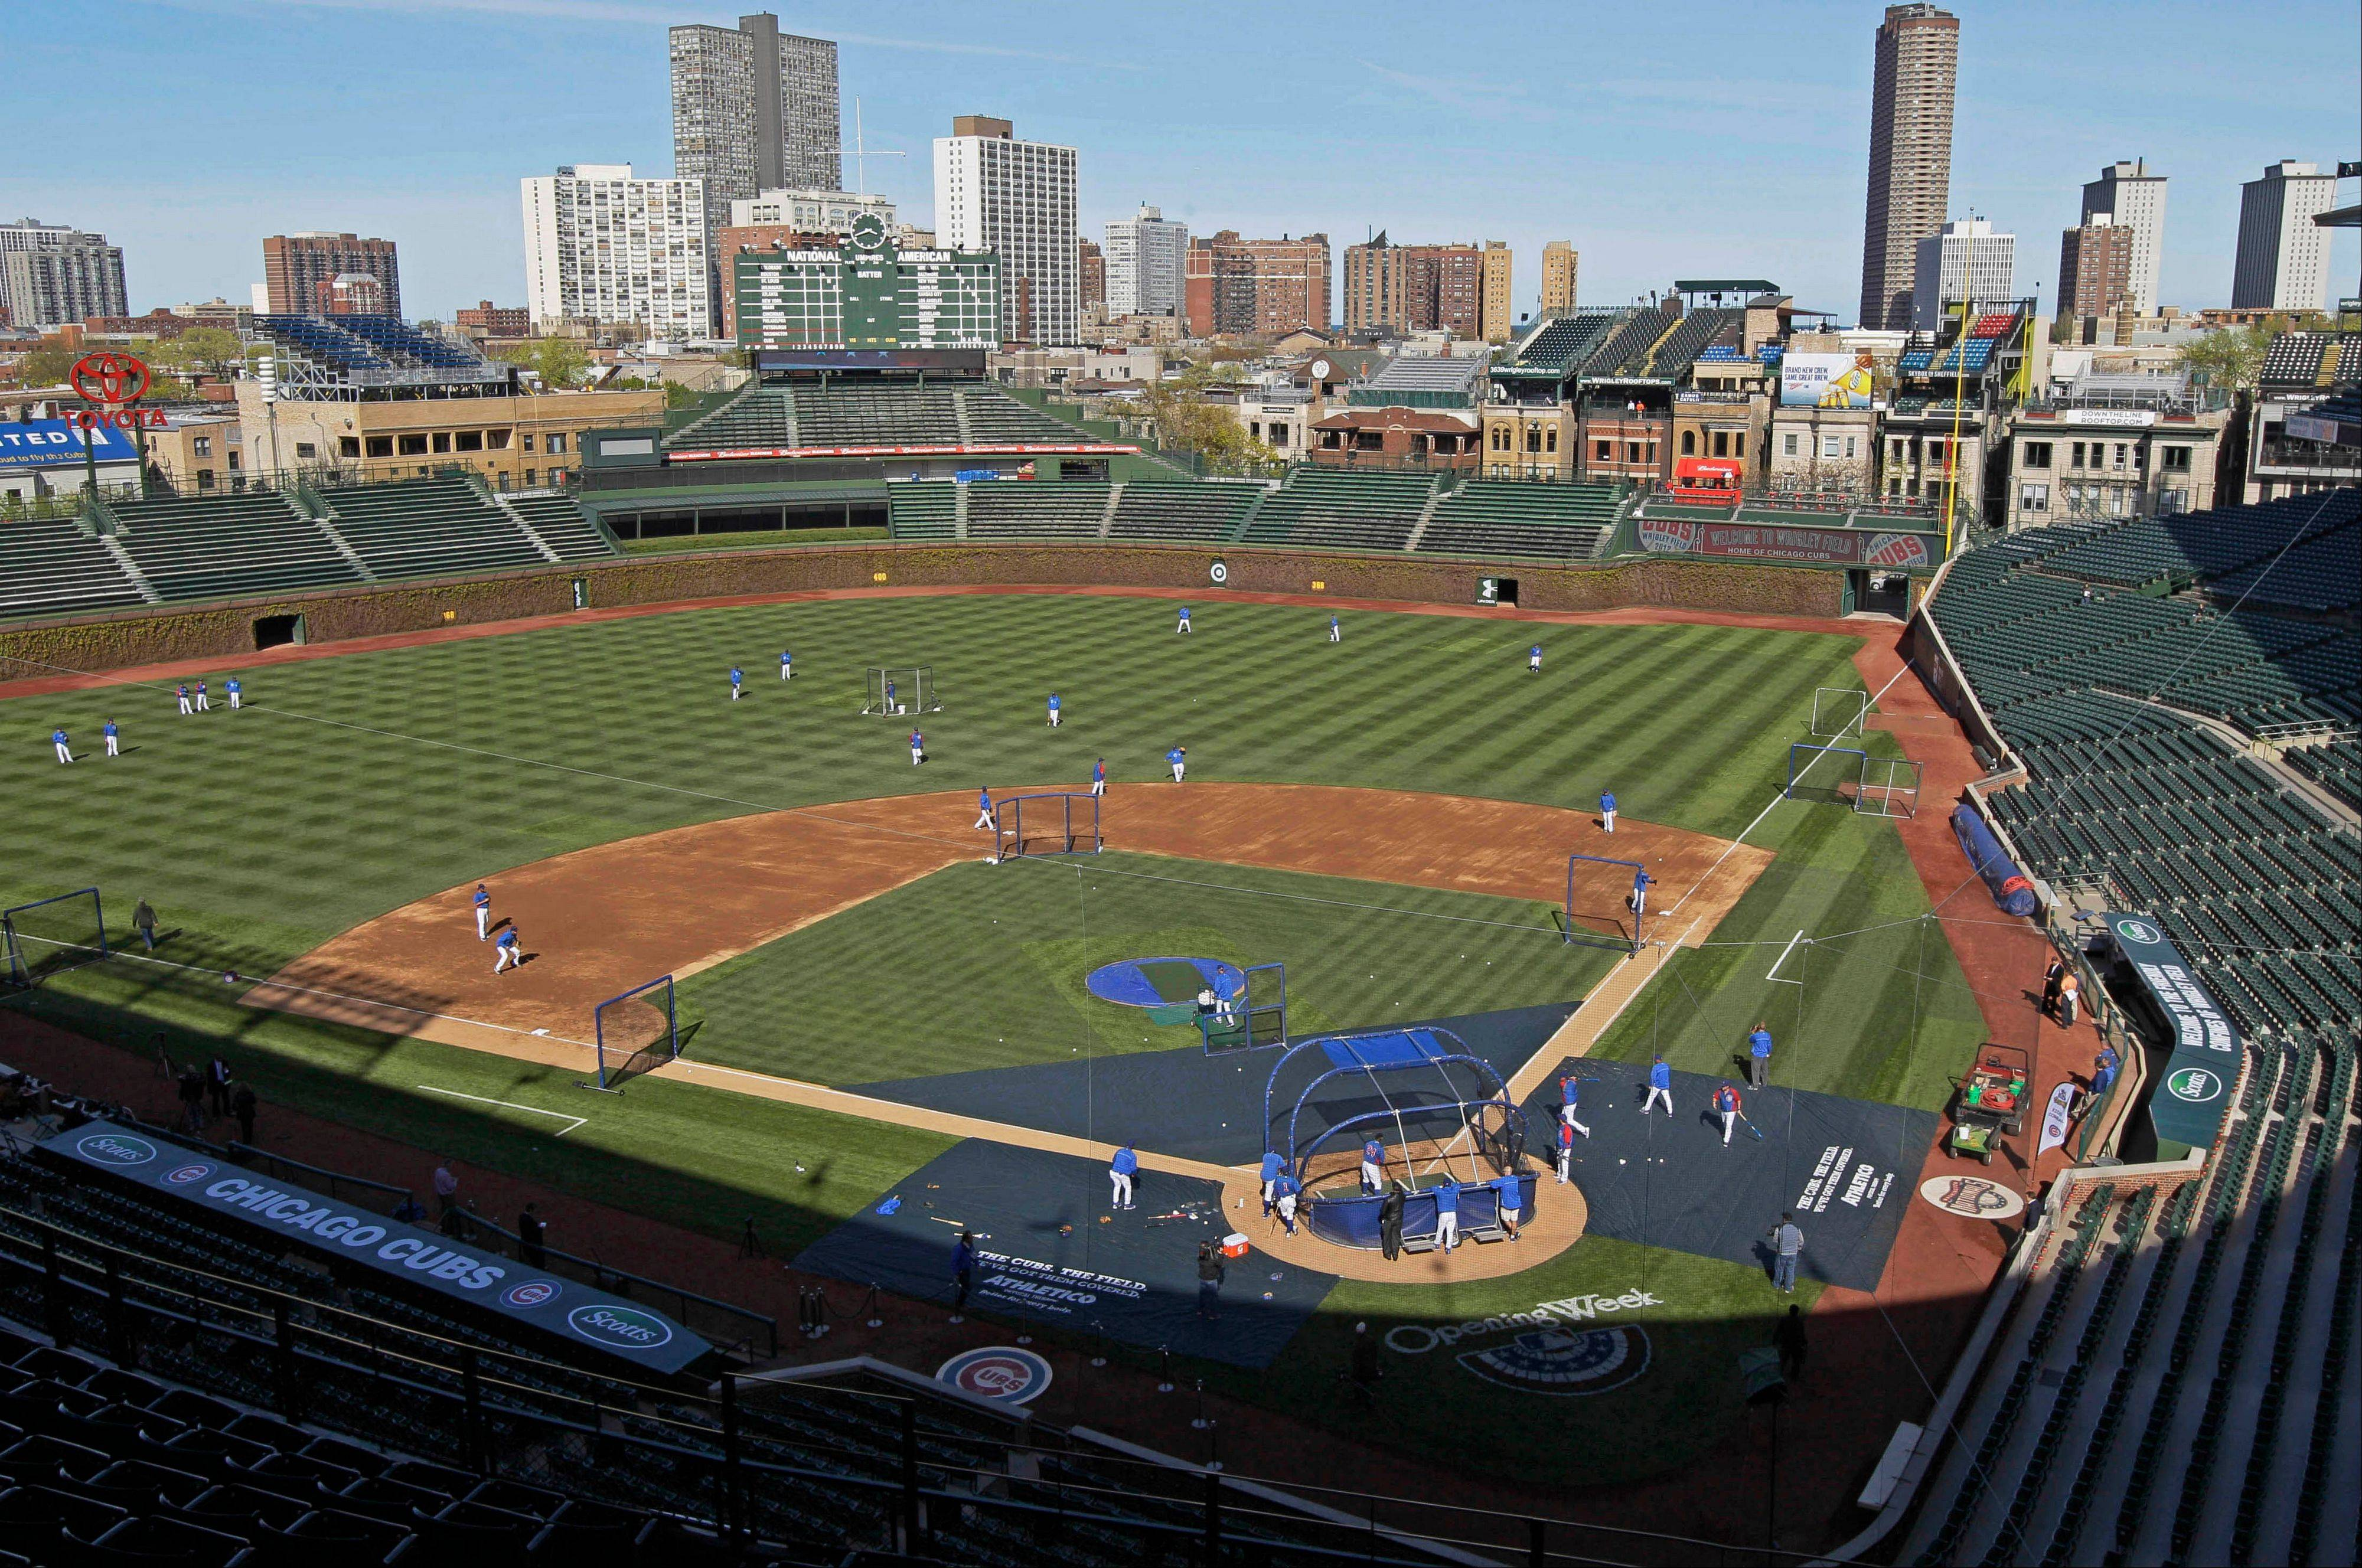 The Chicago Cubs and the city have agreed on details of a $500 million facelift for Wrigley Field, including an electronic video screen that is nearly three times as large as the one currently atop the center field bleachers of the 99-year-old ballpark.